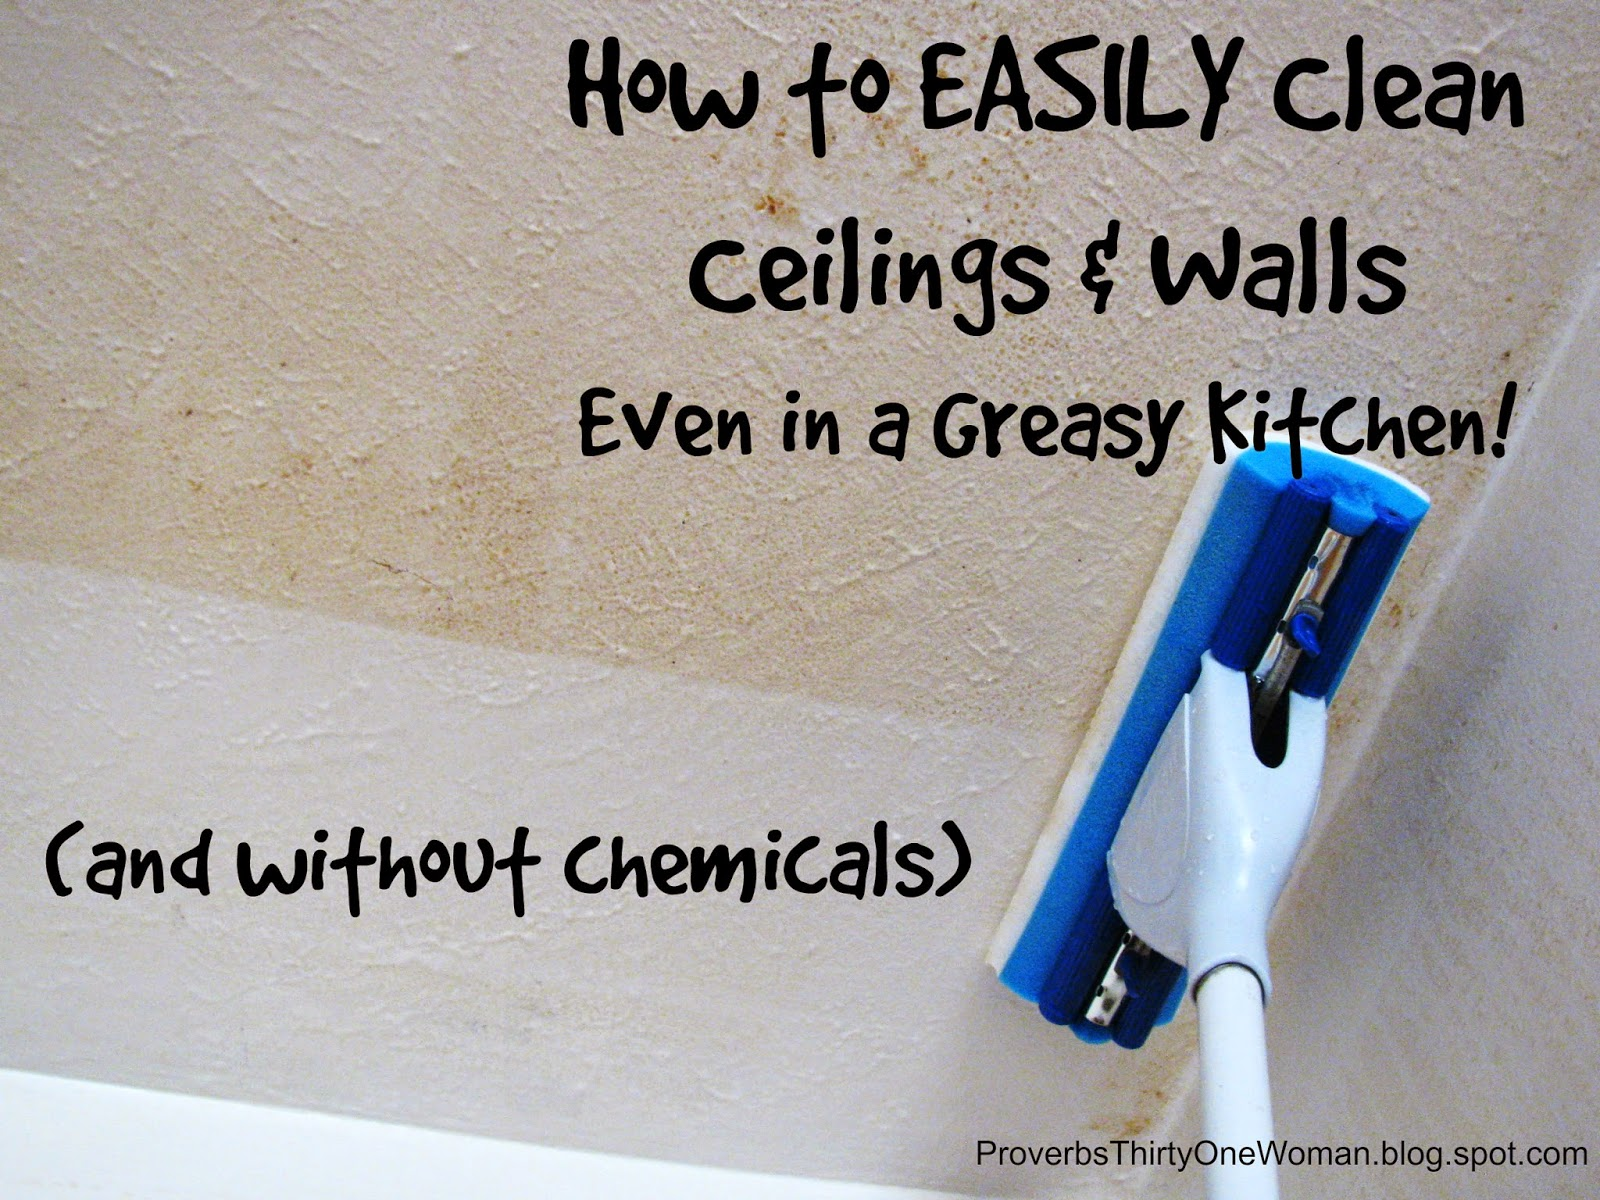 How to Easily Clean Ceilings and Walls Even in a Greasy Kitchen